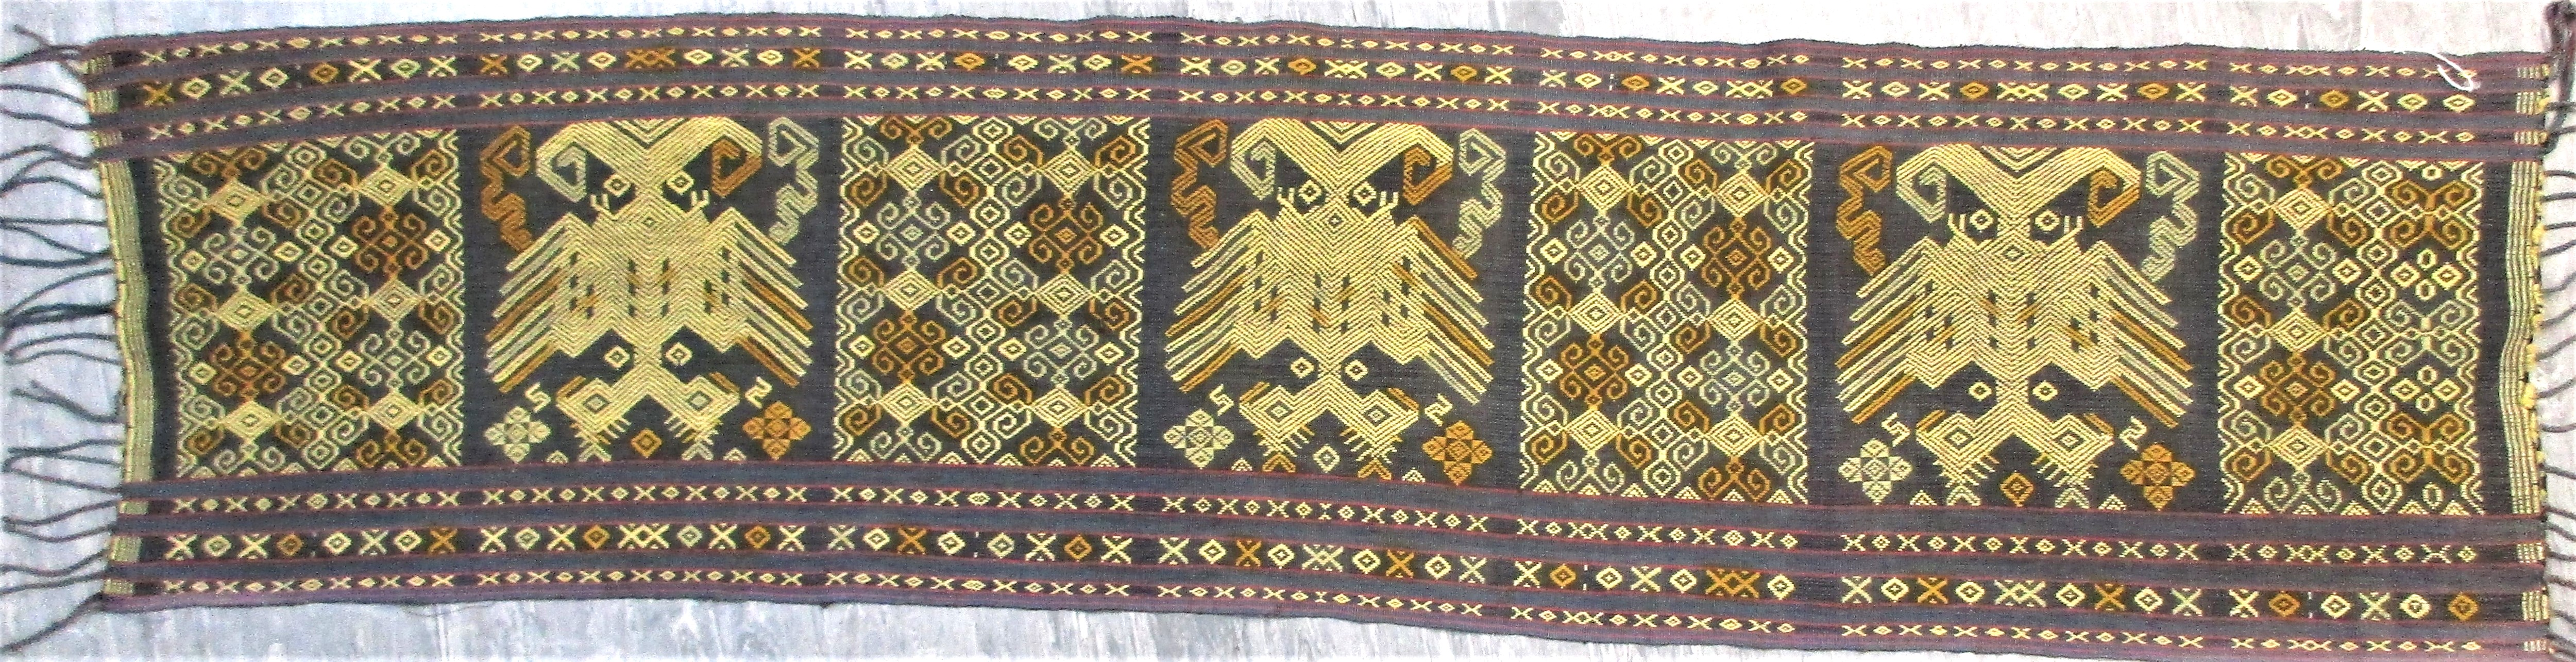 Ceremonial sash from east Sumba with a pattern of mythical birds and geometric patterns worked in